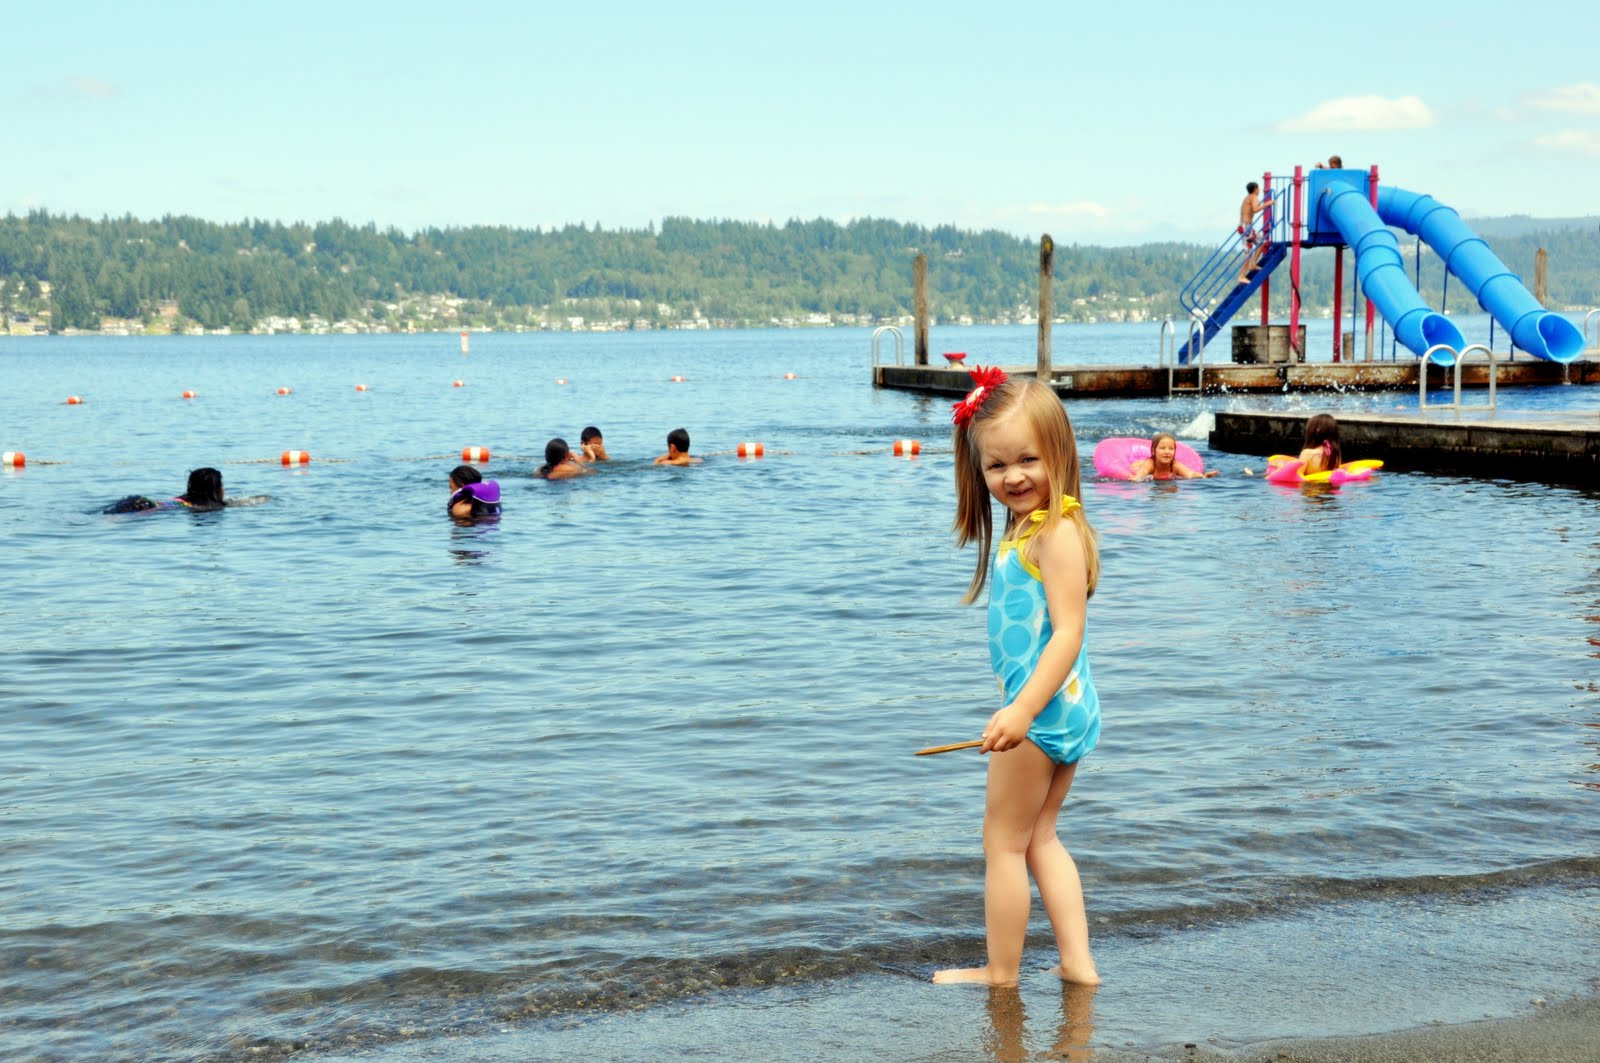 Kids Swimming In A Lake veater family: summertime and swimsuits!